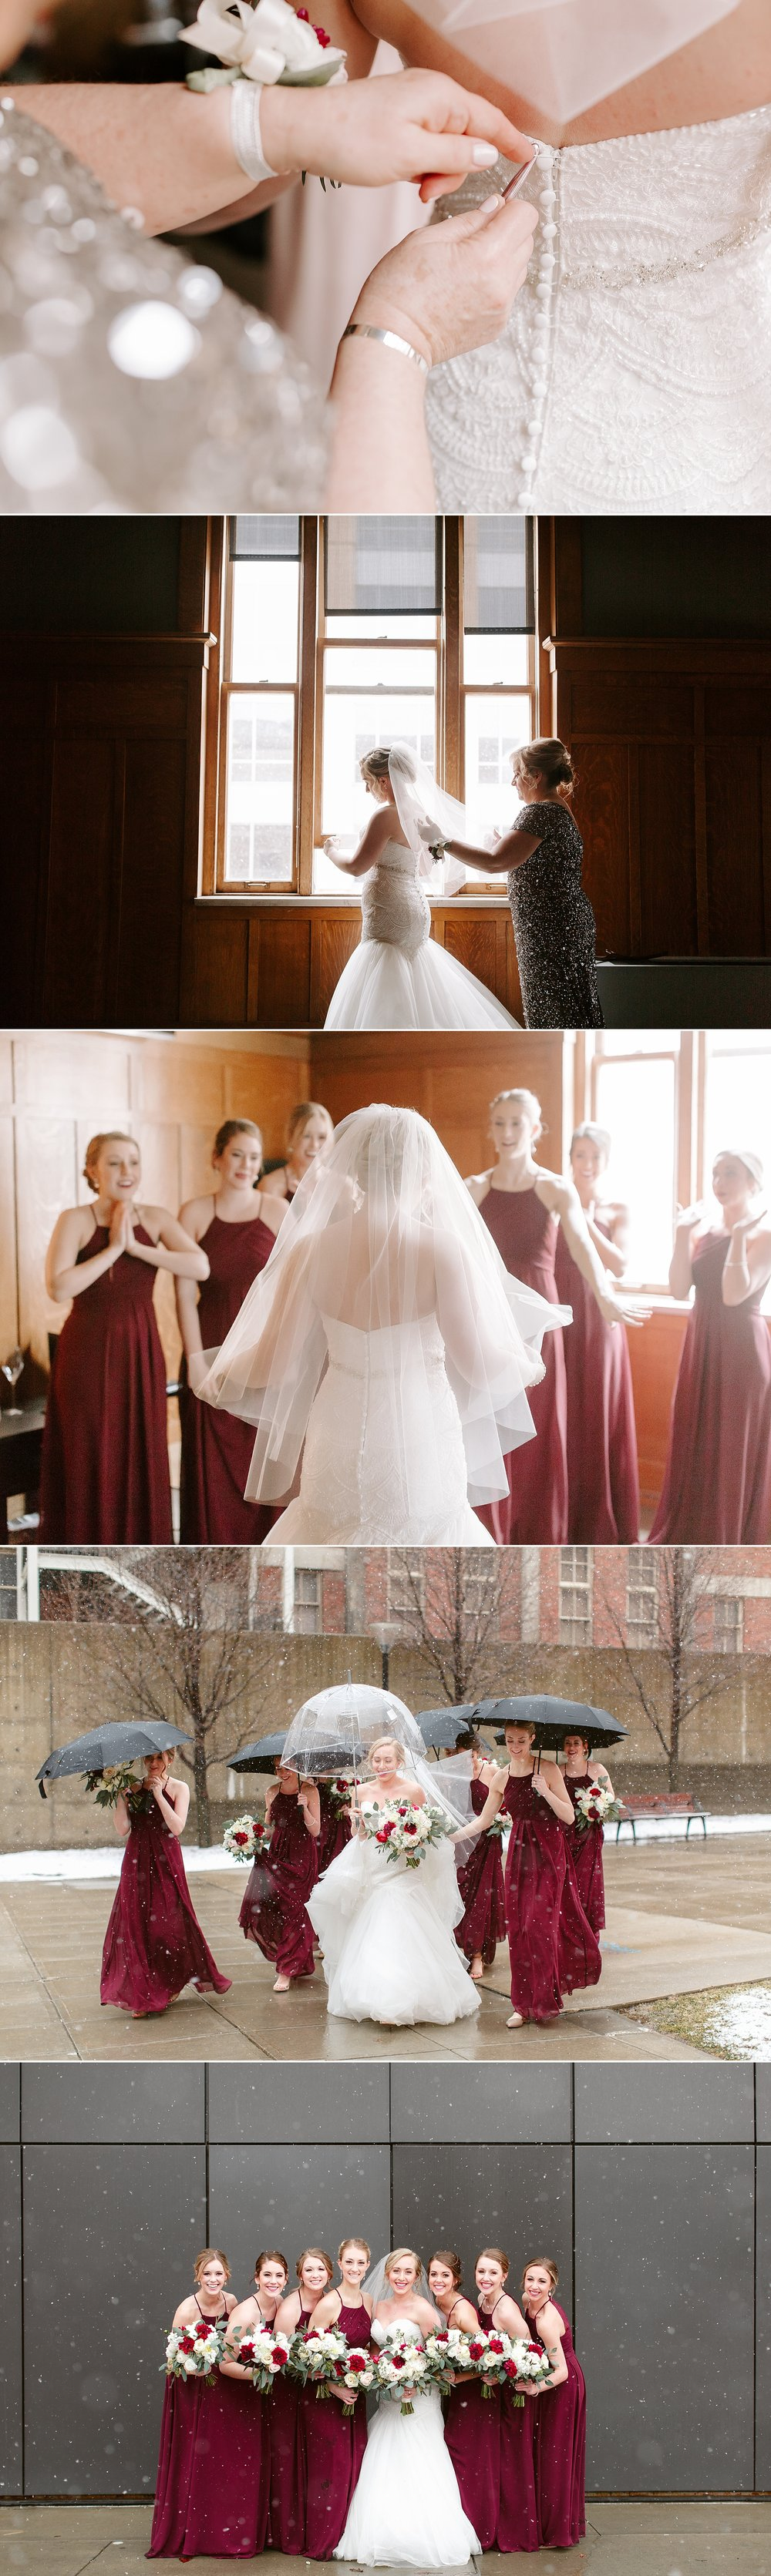 Midwest fine art wedding Des Moines Fall Wedding photographer_0956.jpg